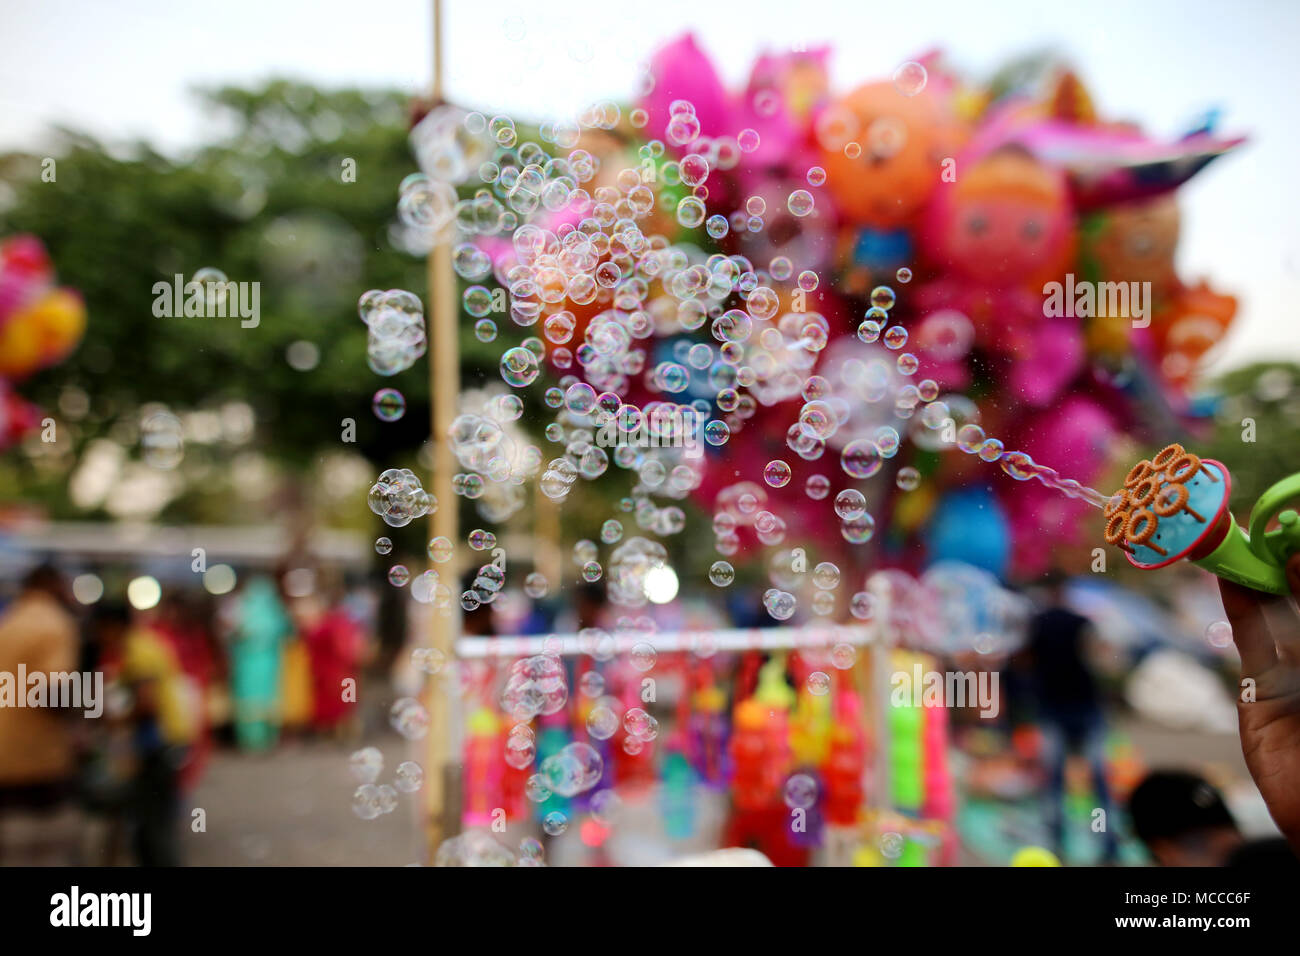 Dhaka, Bangladesh. A bubble seller is making bubbles to attract his customer specially children in Dhaka, Bangladesh on April 15, 2018. Bangladesh has made remarkable progress in reducing poverty, supported by sustained economic growth. Based on the international poverty line of $1.90 per person per day, it reduced poverty from 44.2 percent in 1991 to 13.8 percent in 2016/17 according to World Bank. © Rehman Asad/Alamy Stock Photo - Stock Image